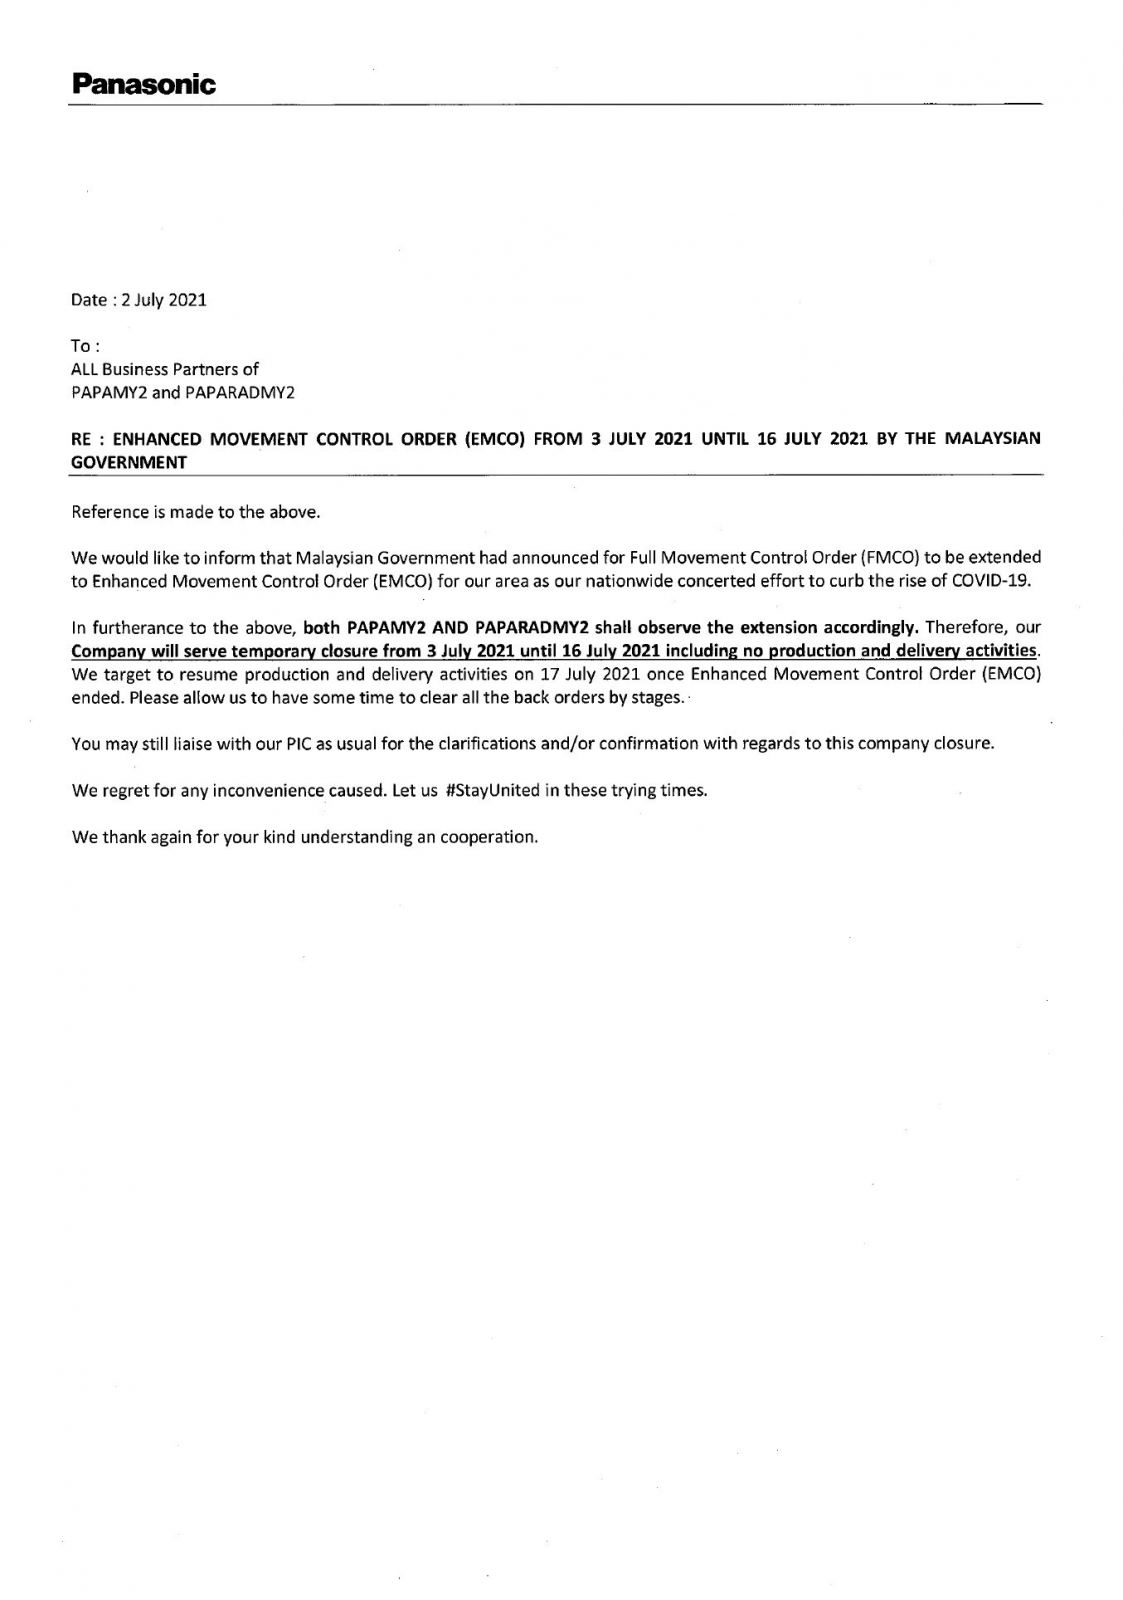 NOTICE ON EMCO FROM PANASONIC MALAYSIA AIR CONDITIONER COMPRESSOR FACTORY